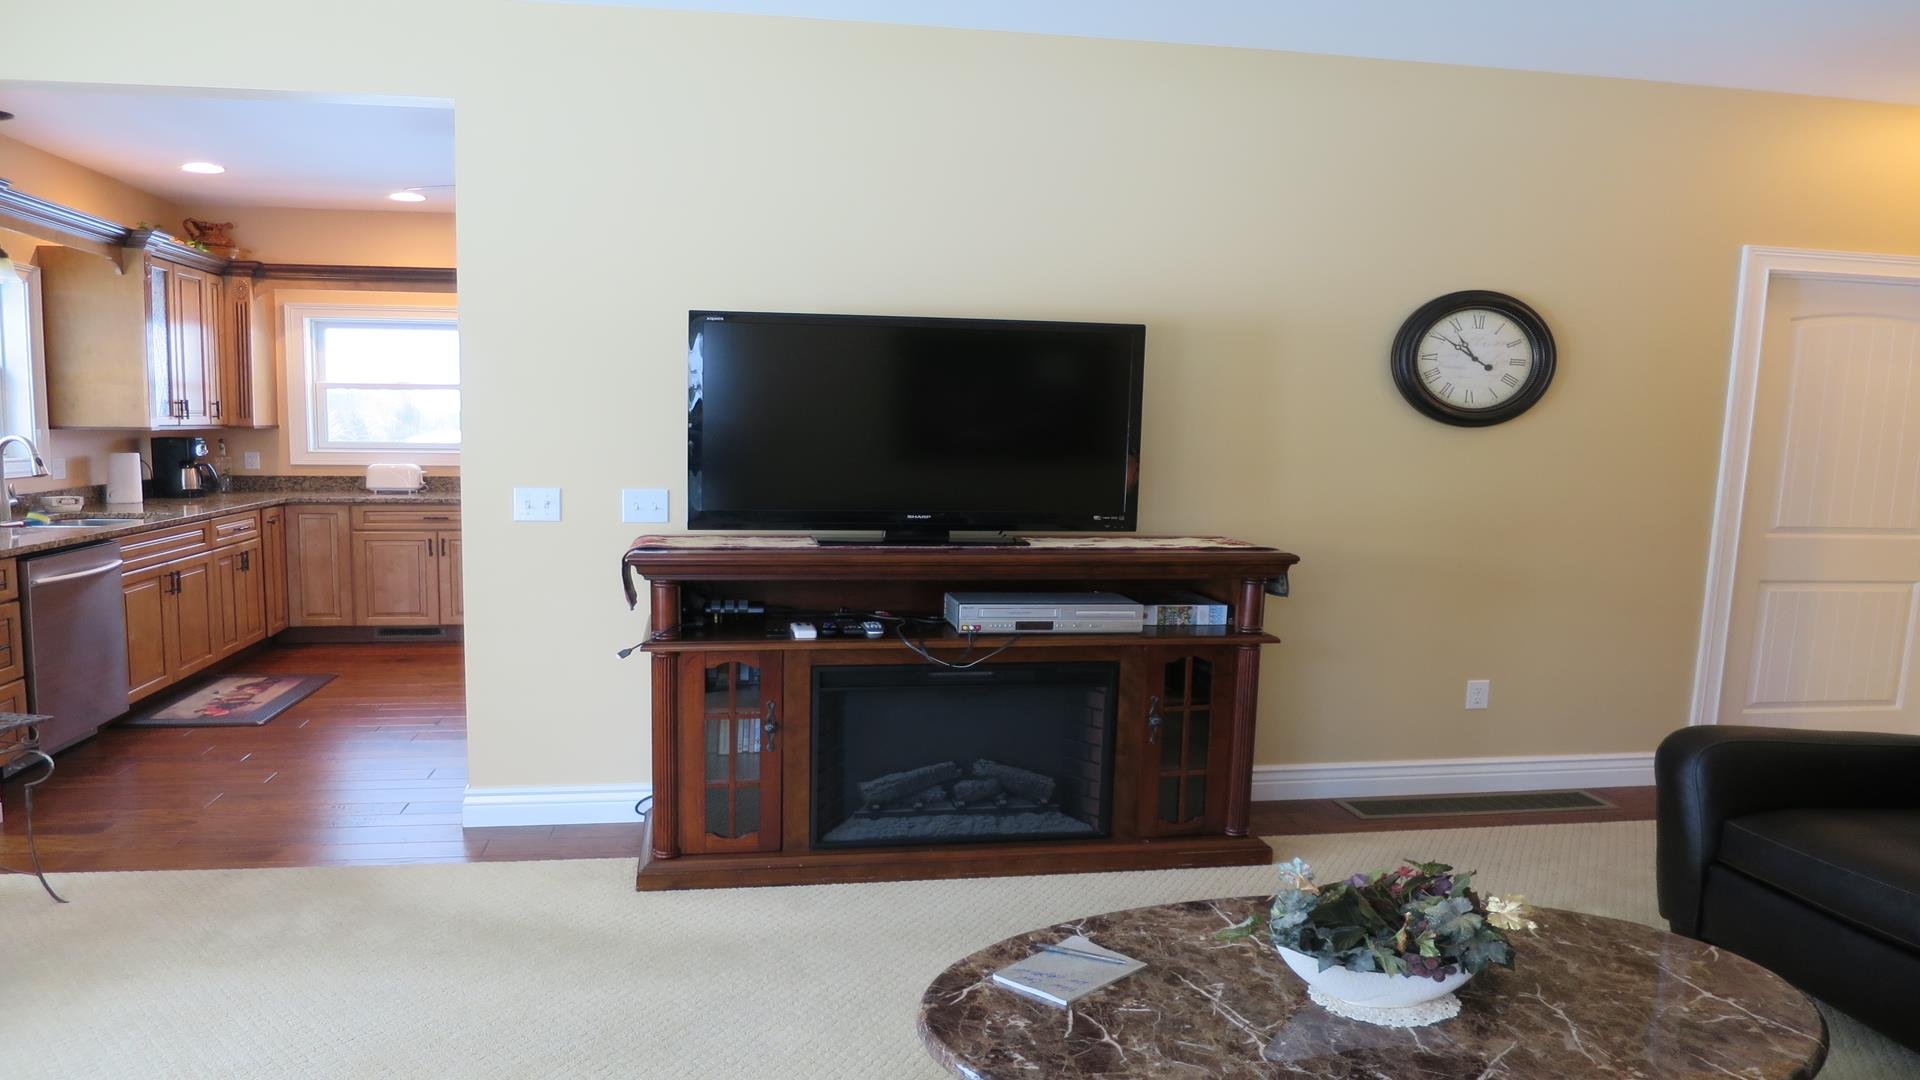 Electric Fireplace in family room with flat screen TV